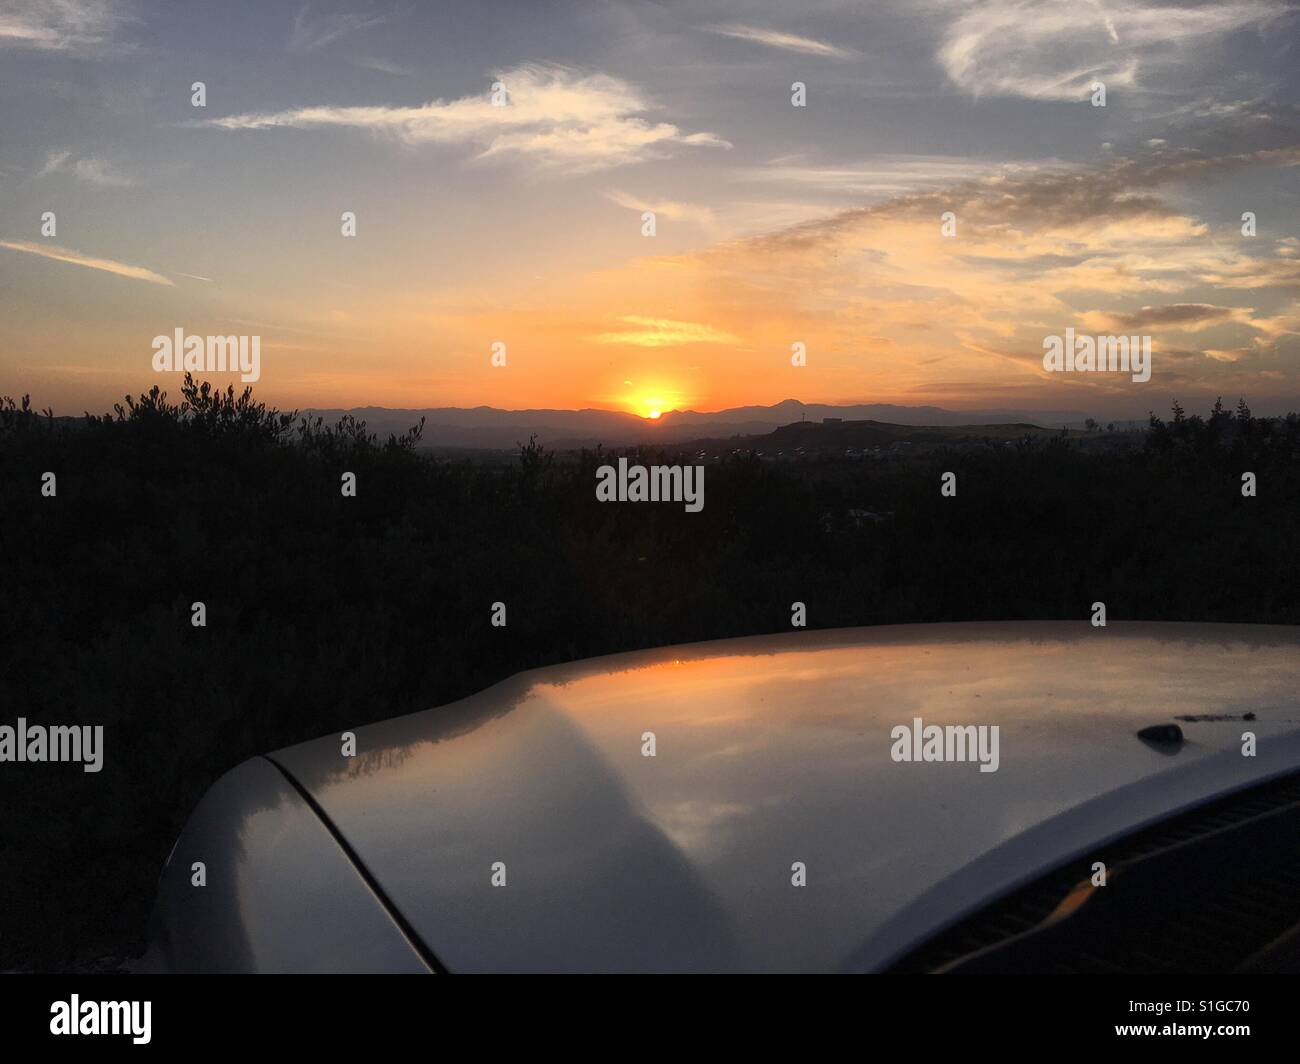 Catching a beautiful sunset while parked at a lookout point. - Stock Image